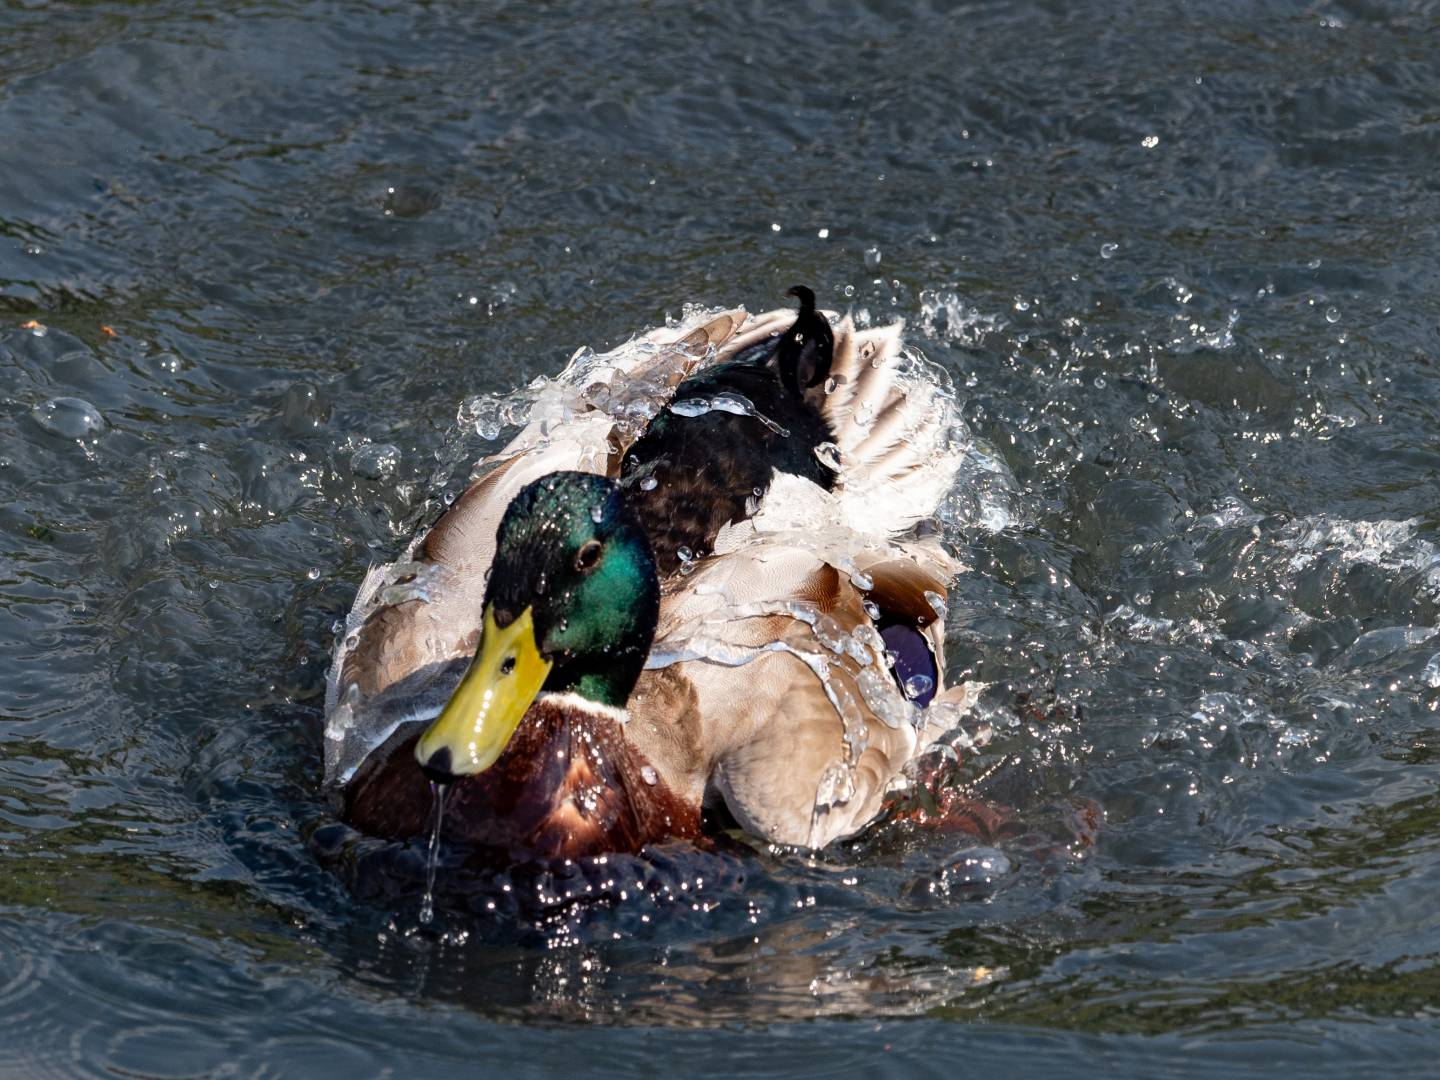 Water off a duck's back: Olympus E-M1 Mk II and M.Zuiko 40-150 f/2.8 (Mike Evans)